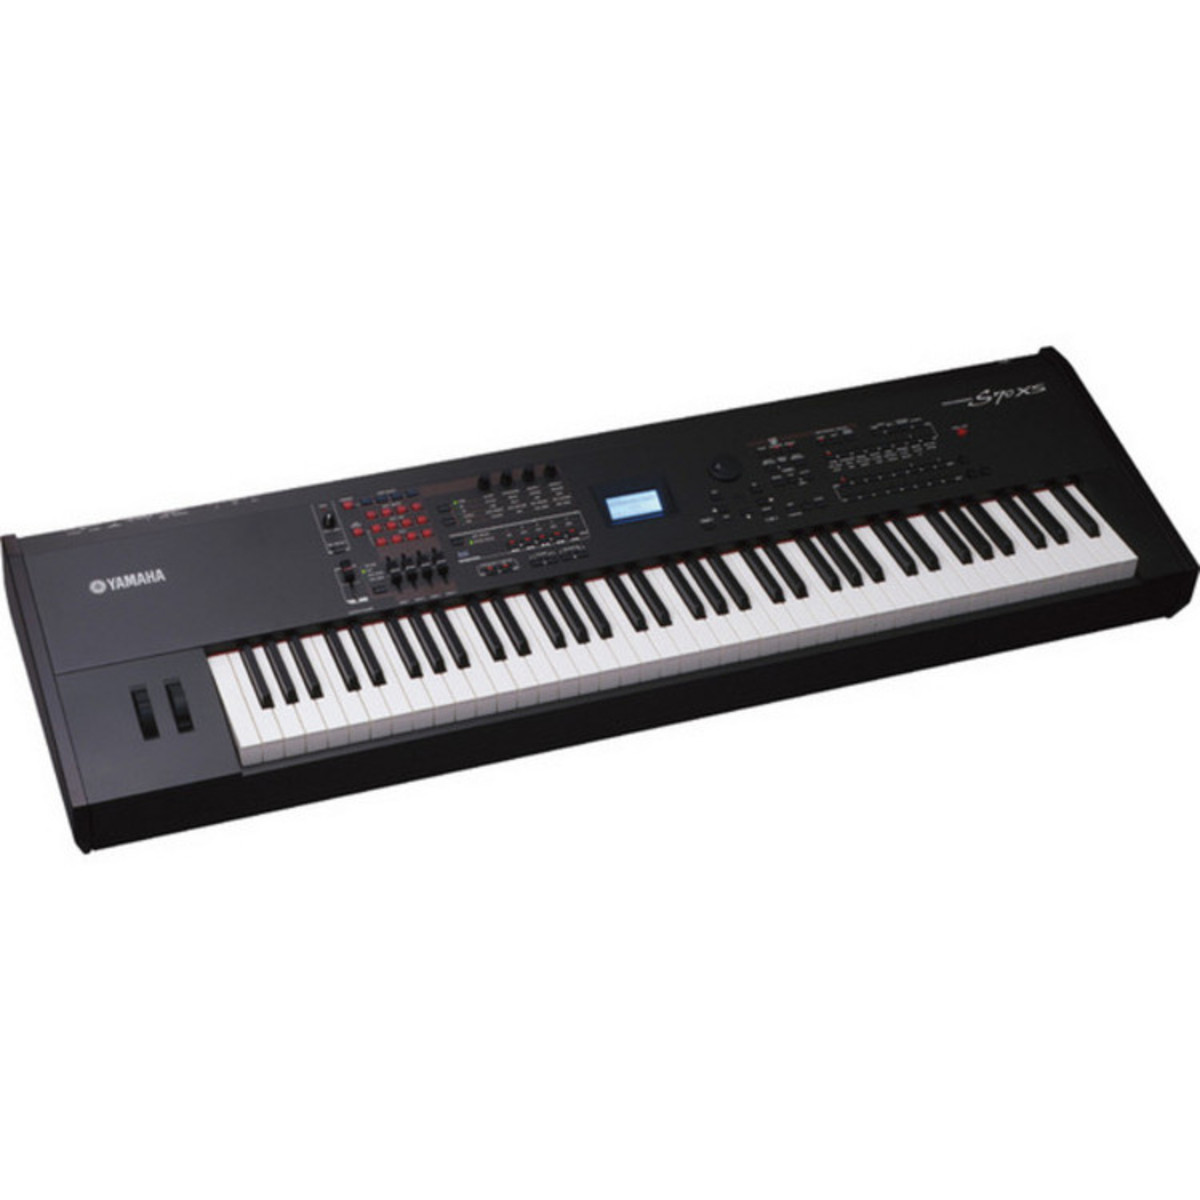 disc yamaha s70xs keyboard synthesizer cubase 7 5 bundle at gear4music. Black Bedroom Furniture Sets. Home Design Ideas